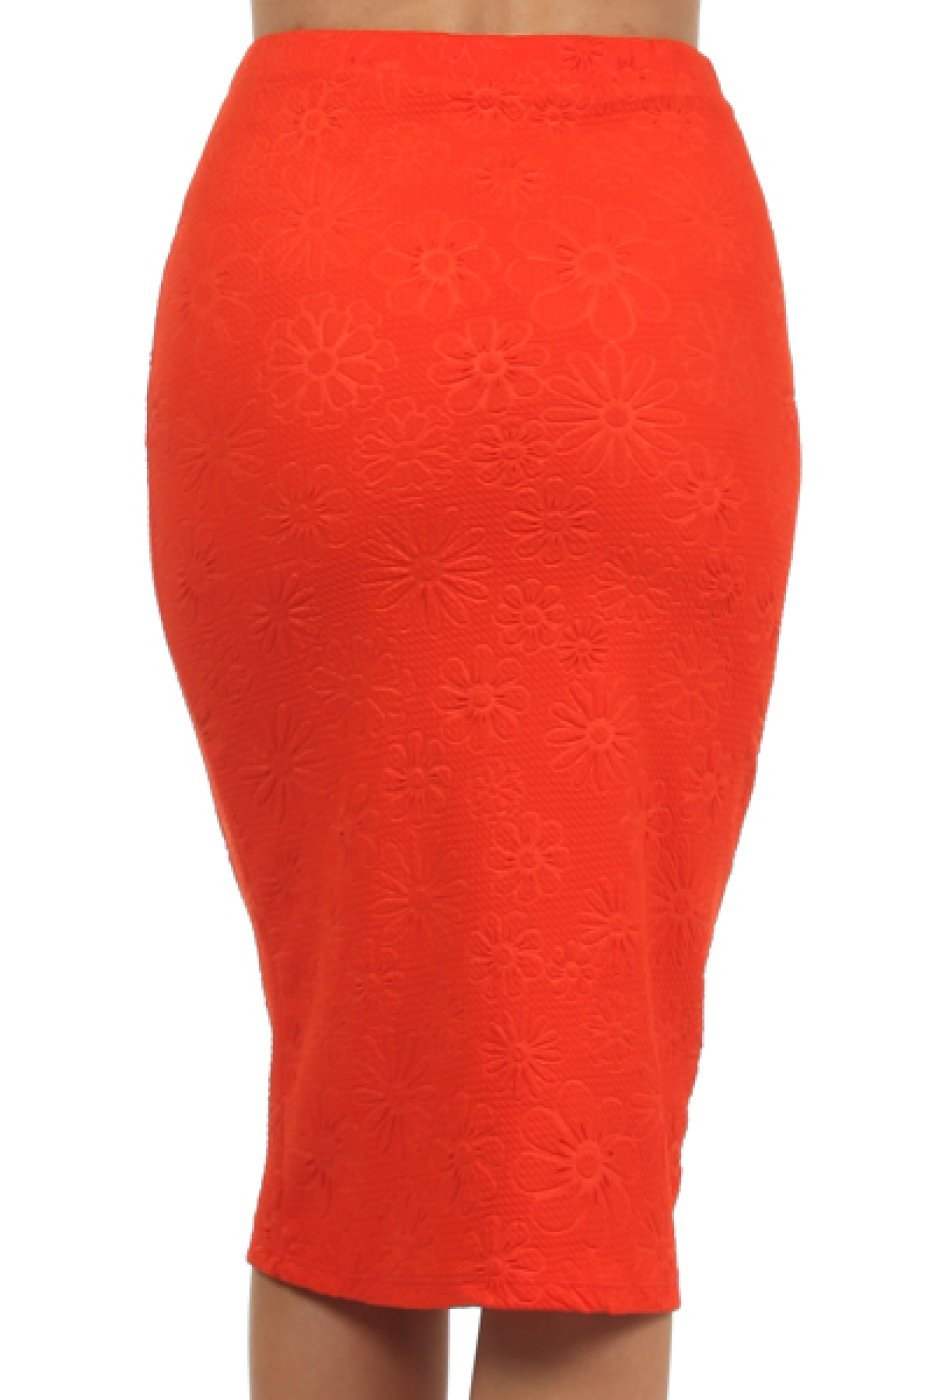 2LUV Women's Mix Print High Waisted Knee Length Pencil Skirt Red M (S170-7 RY) by 2LUV (Image #3)